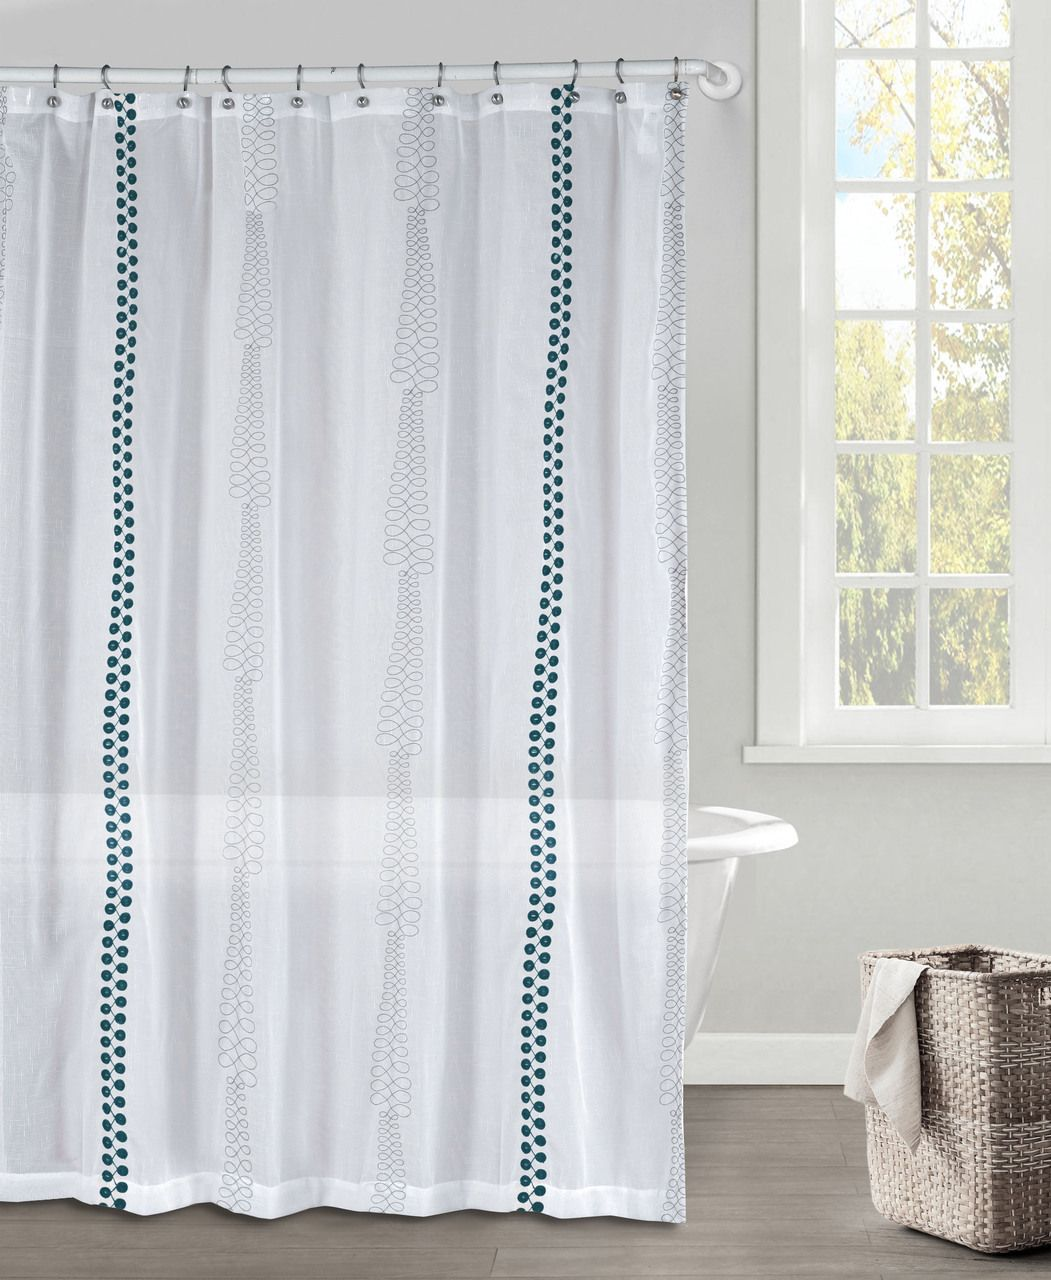 White Gray And Dark Teal Faux Linen Textured Sheer Fabric Shower Curtain Embroidered Geometric Design 70 X 72 Fabric Shower Curtains Curtains Geometric Design